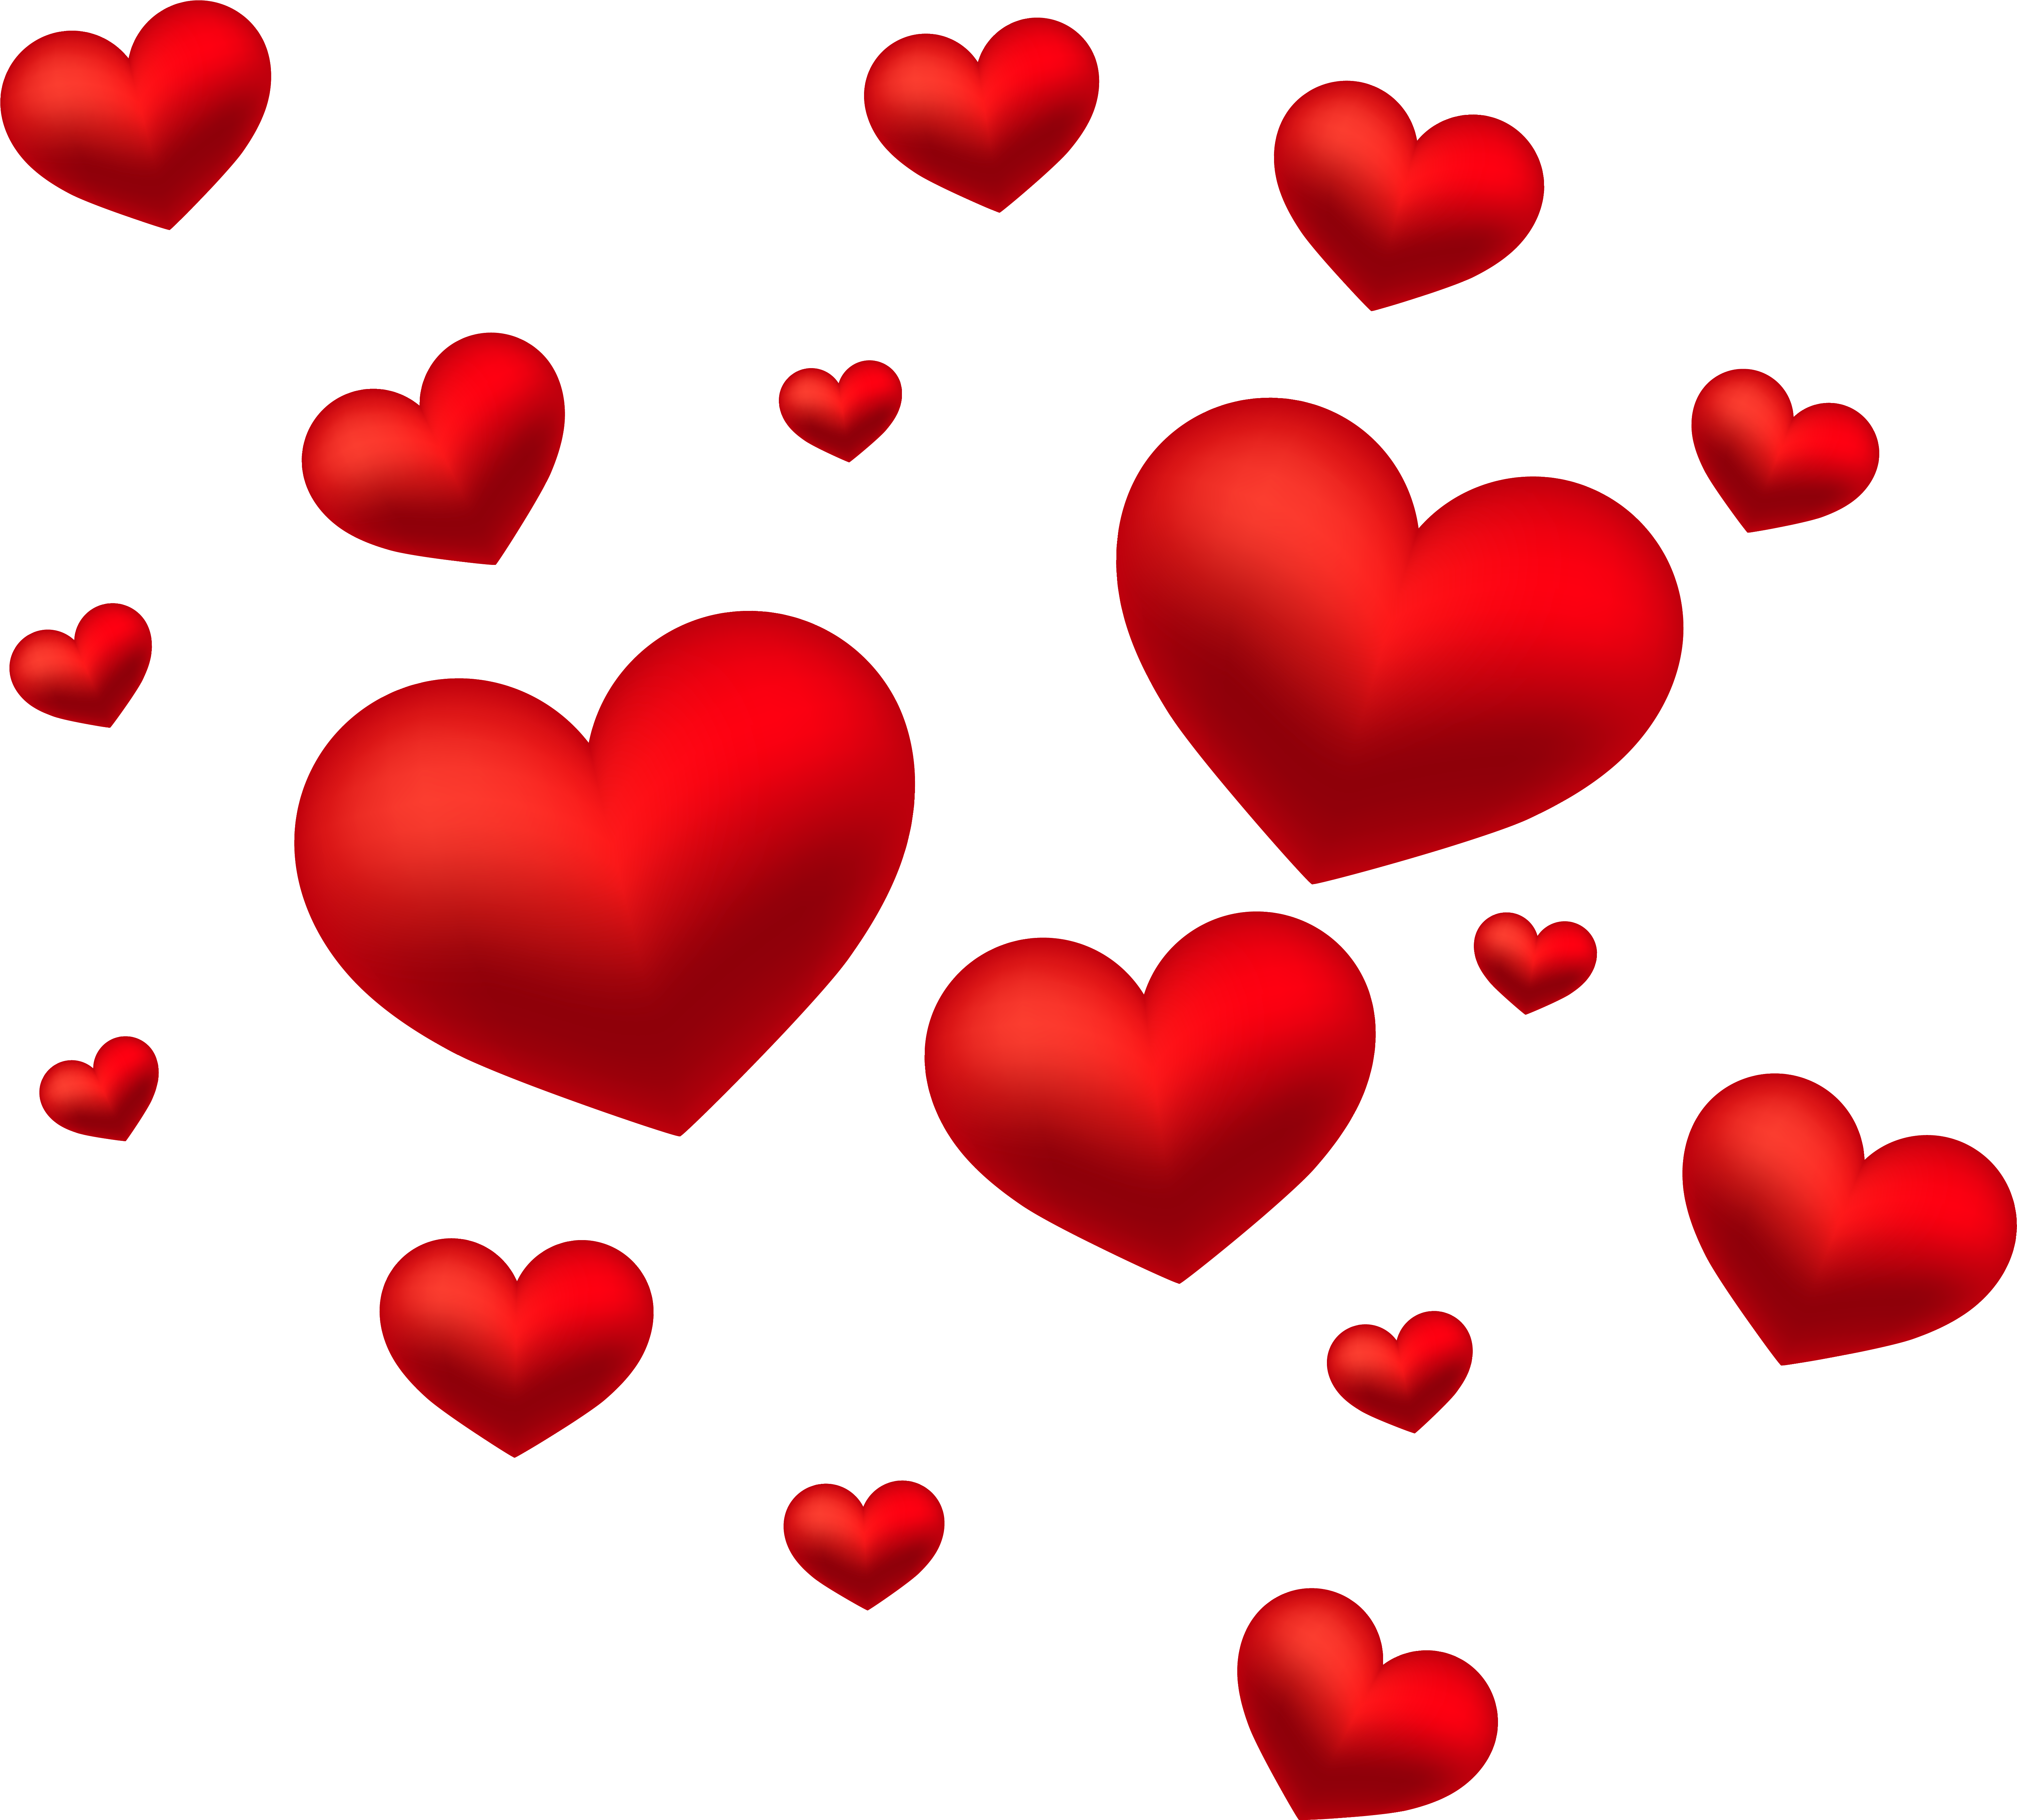 Corazones png. Download hd free images